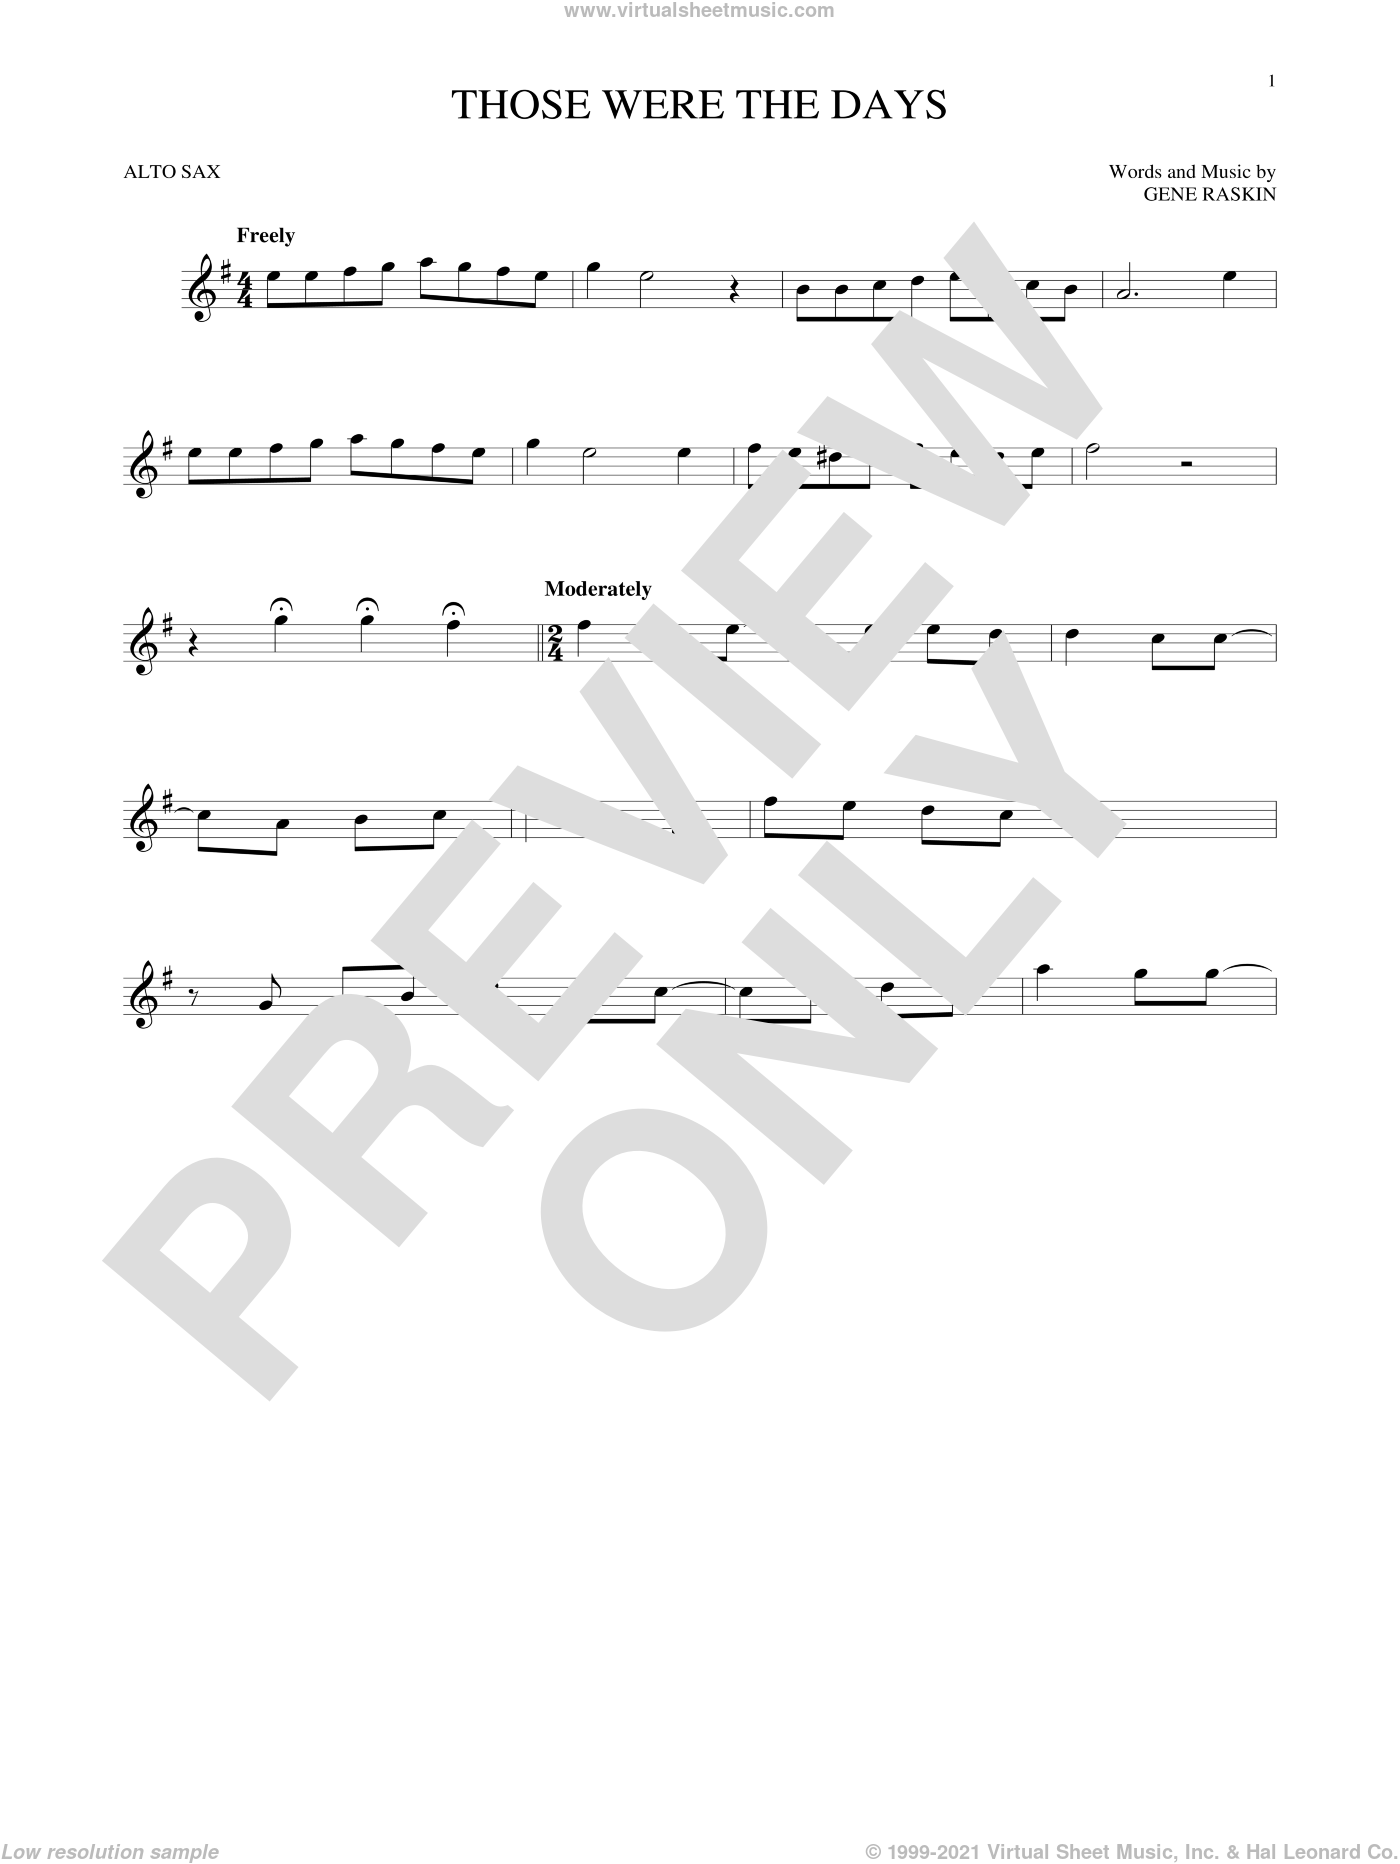 Those Were The Days sheet music for alto saxophone solo by Gene Raskin. Score Image Preview.